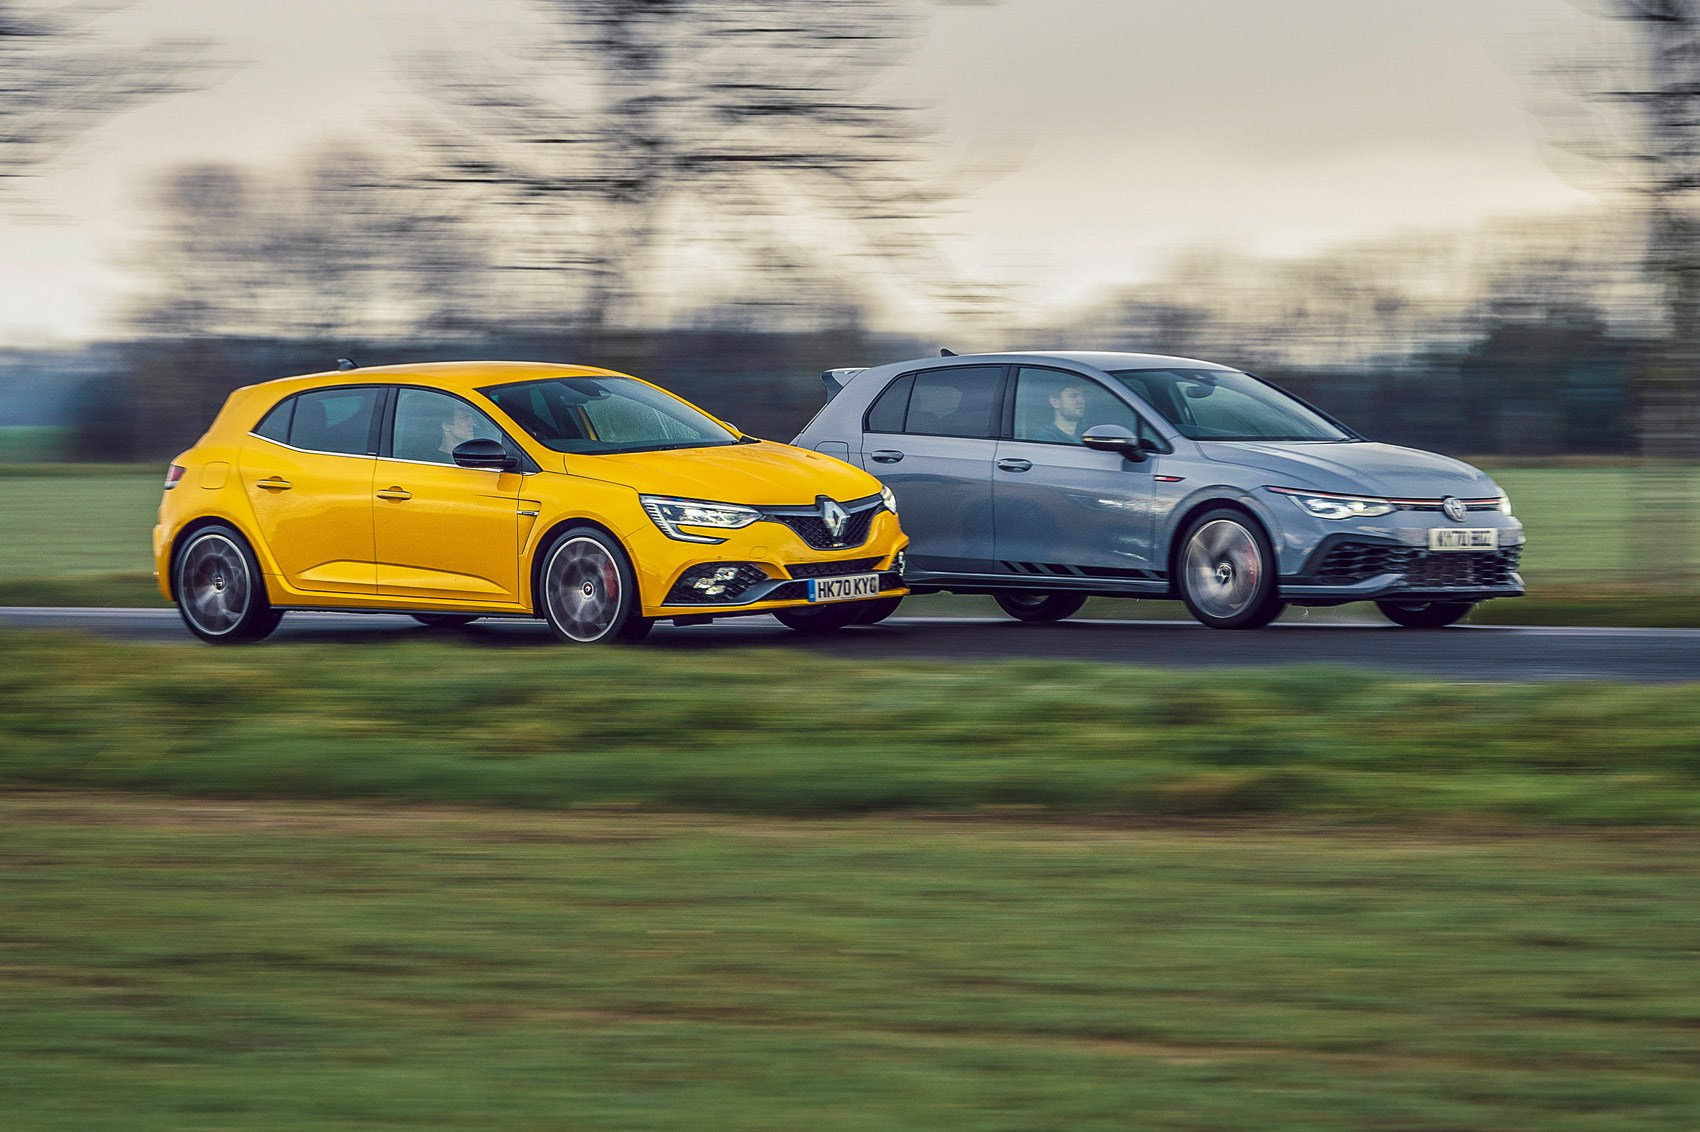 Golf GTI Clubsport vs Megane RS Trophy twin test (2021) review